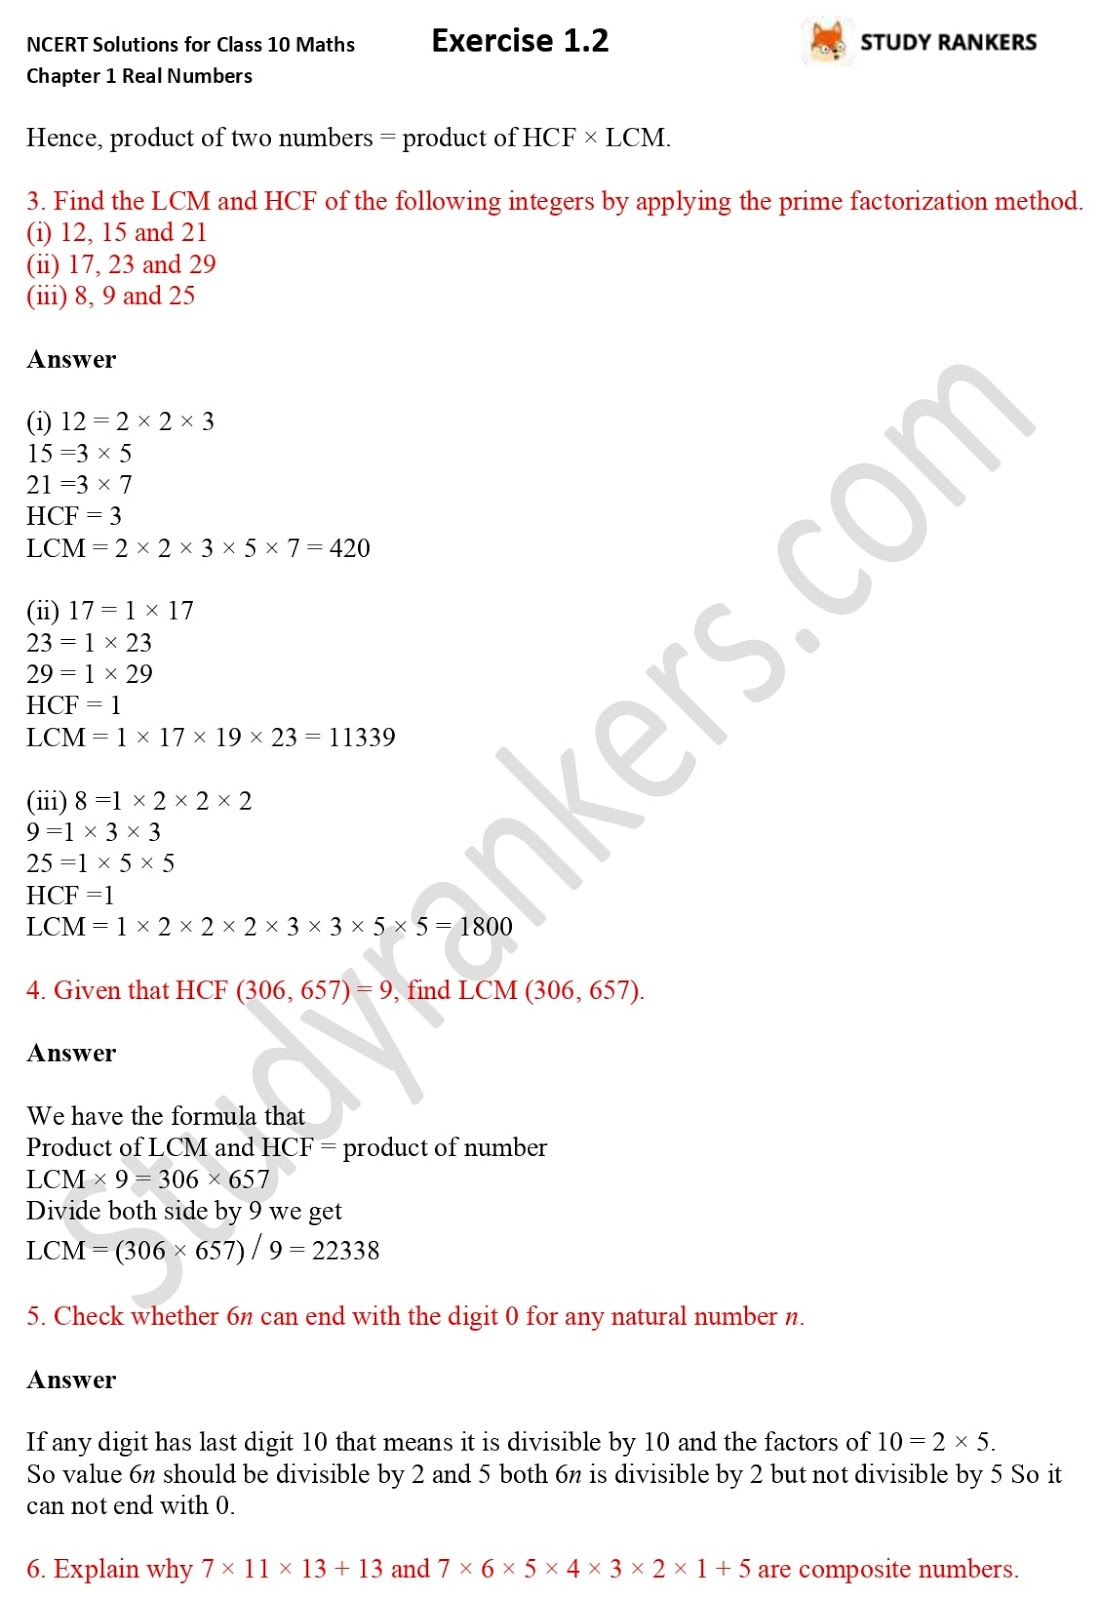 NCERT Solutions for Class 10 Maths Chapter 1 Real Numbers Exercise 1.2 2